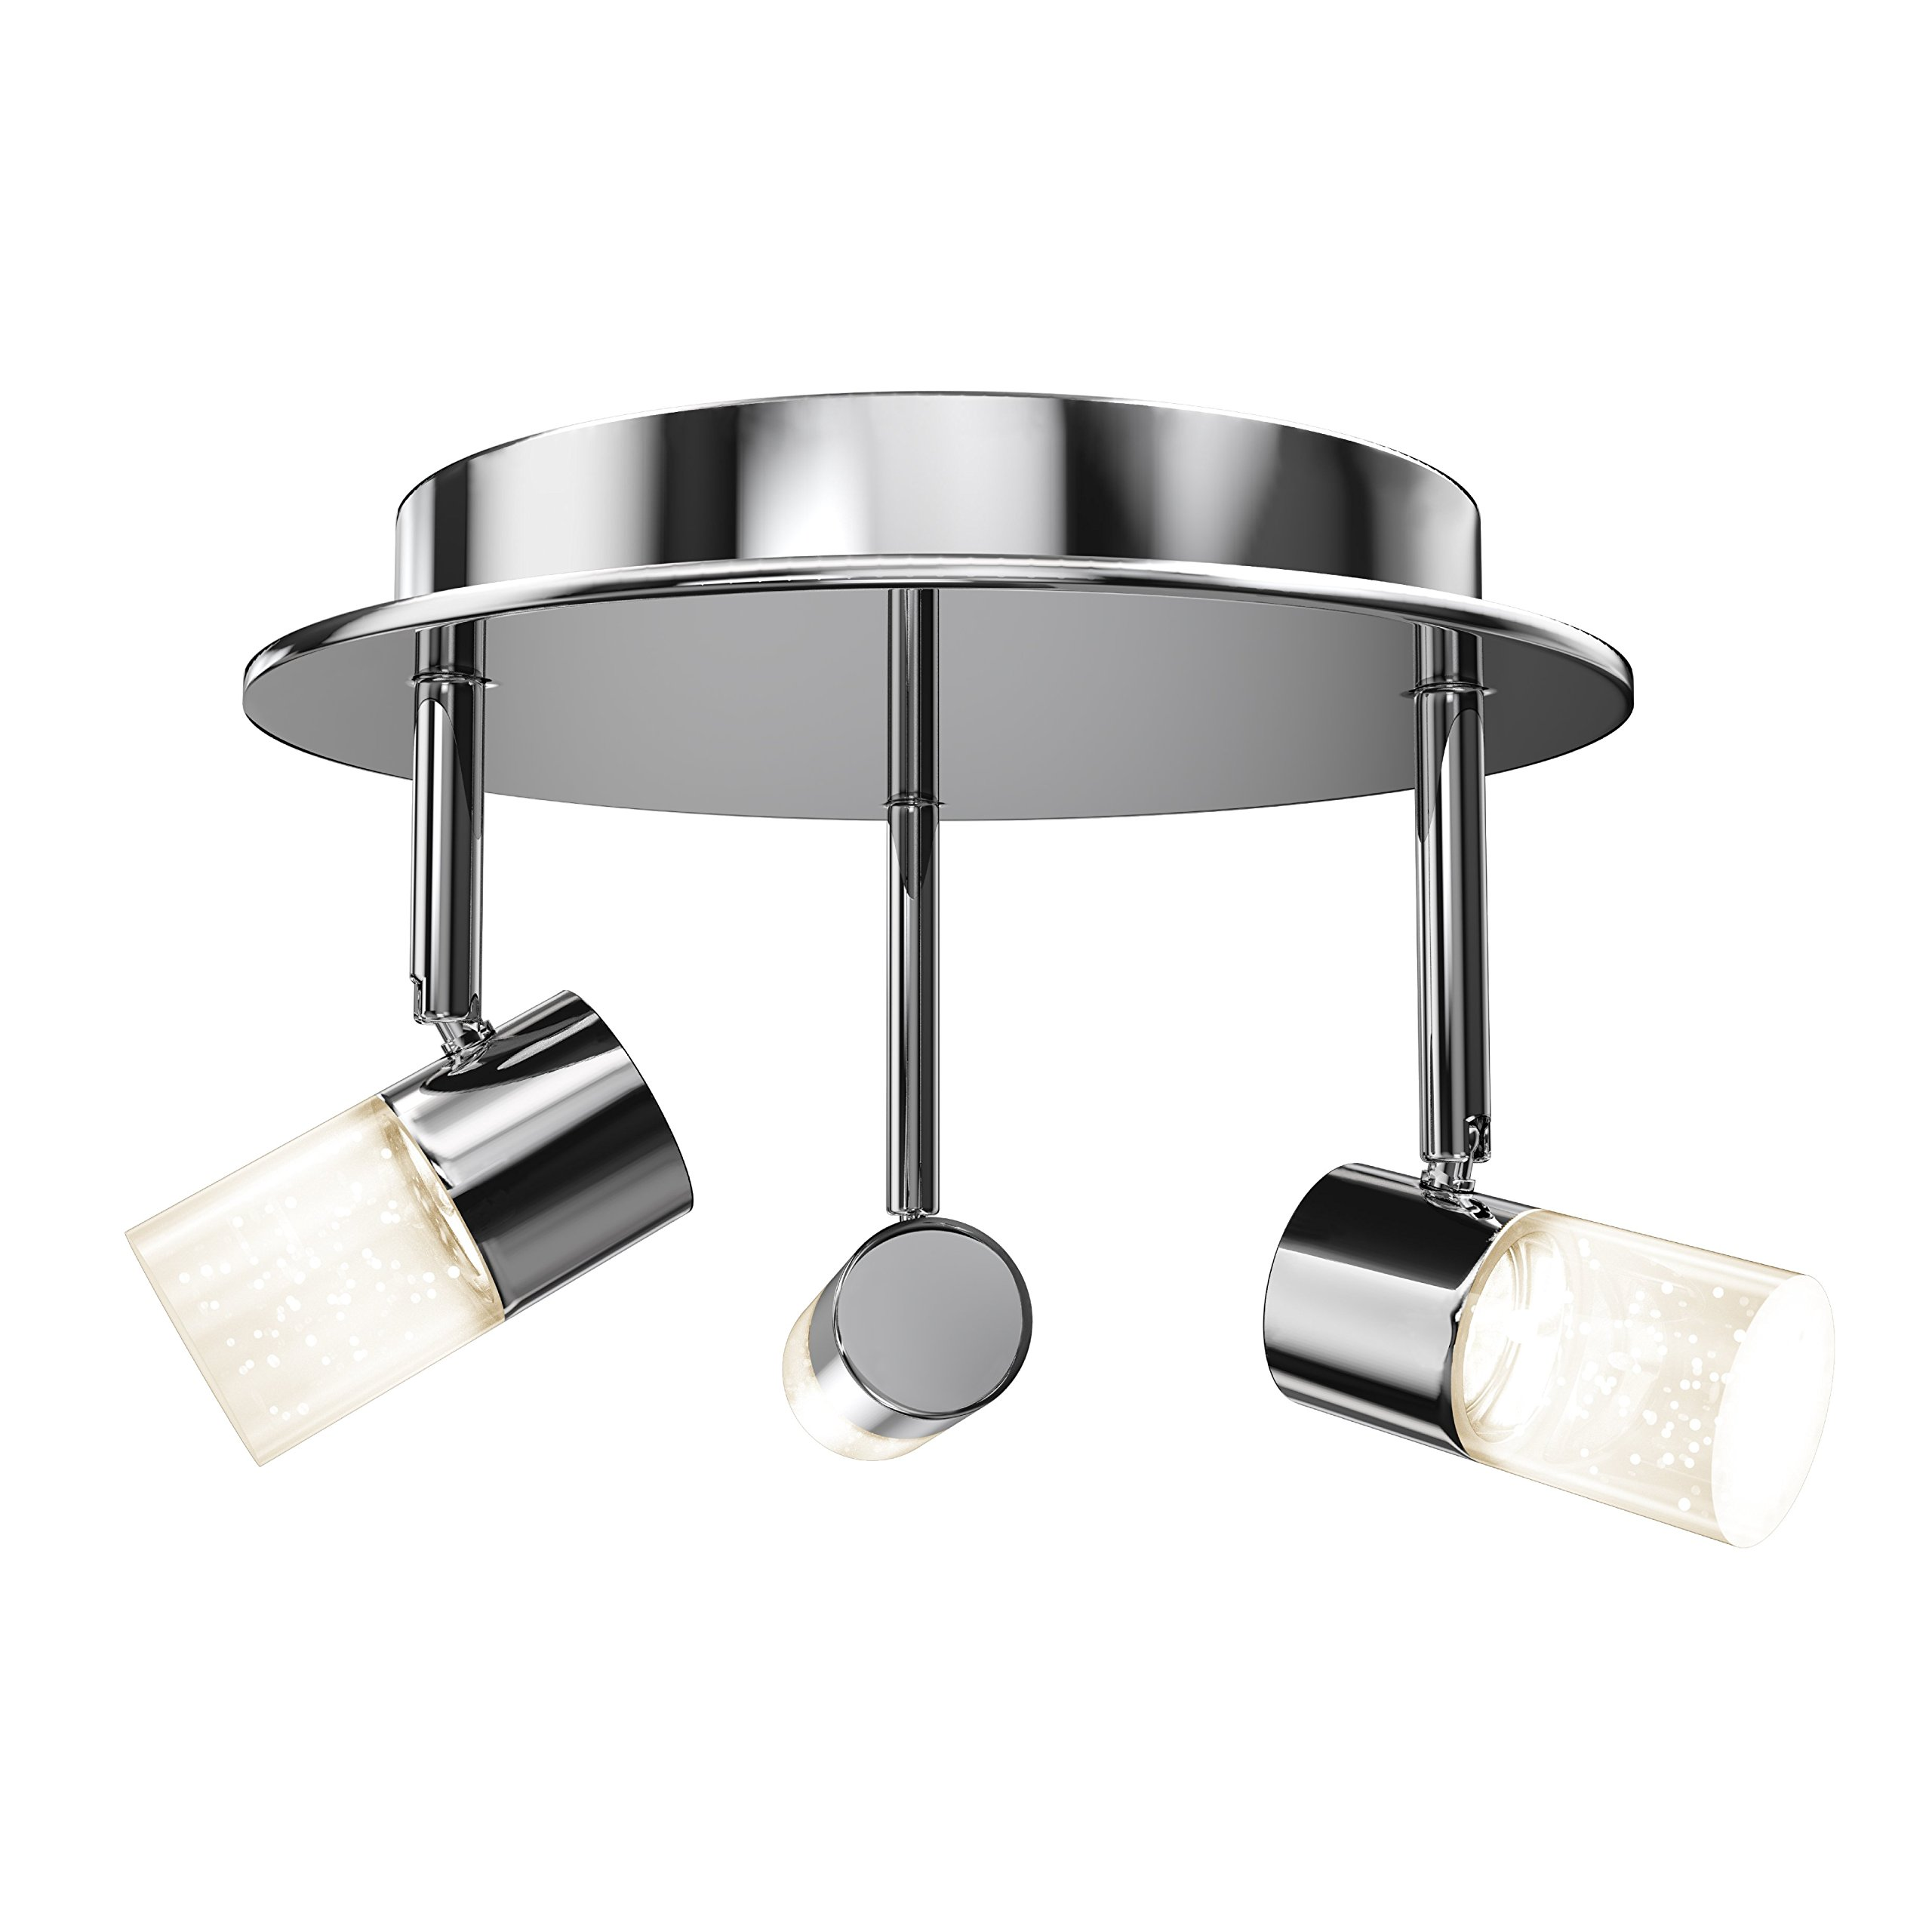 Artika CL36W-HD1 Essence Flare RD Multi-Directional Flushmount Ceiling Light Fixture 3x6W with Integrated LED, Chrome Plated Finish